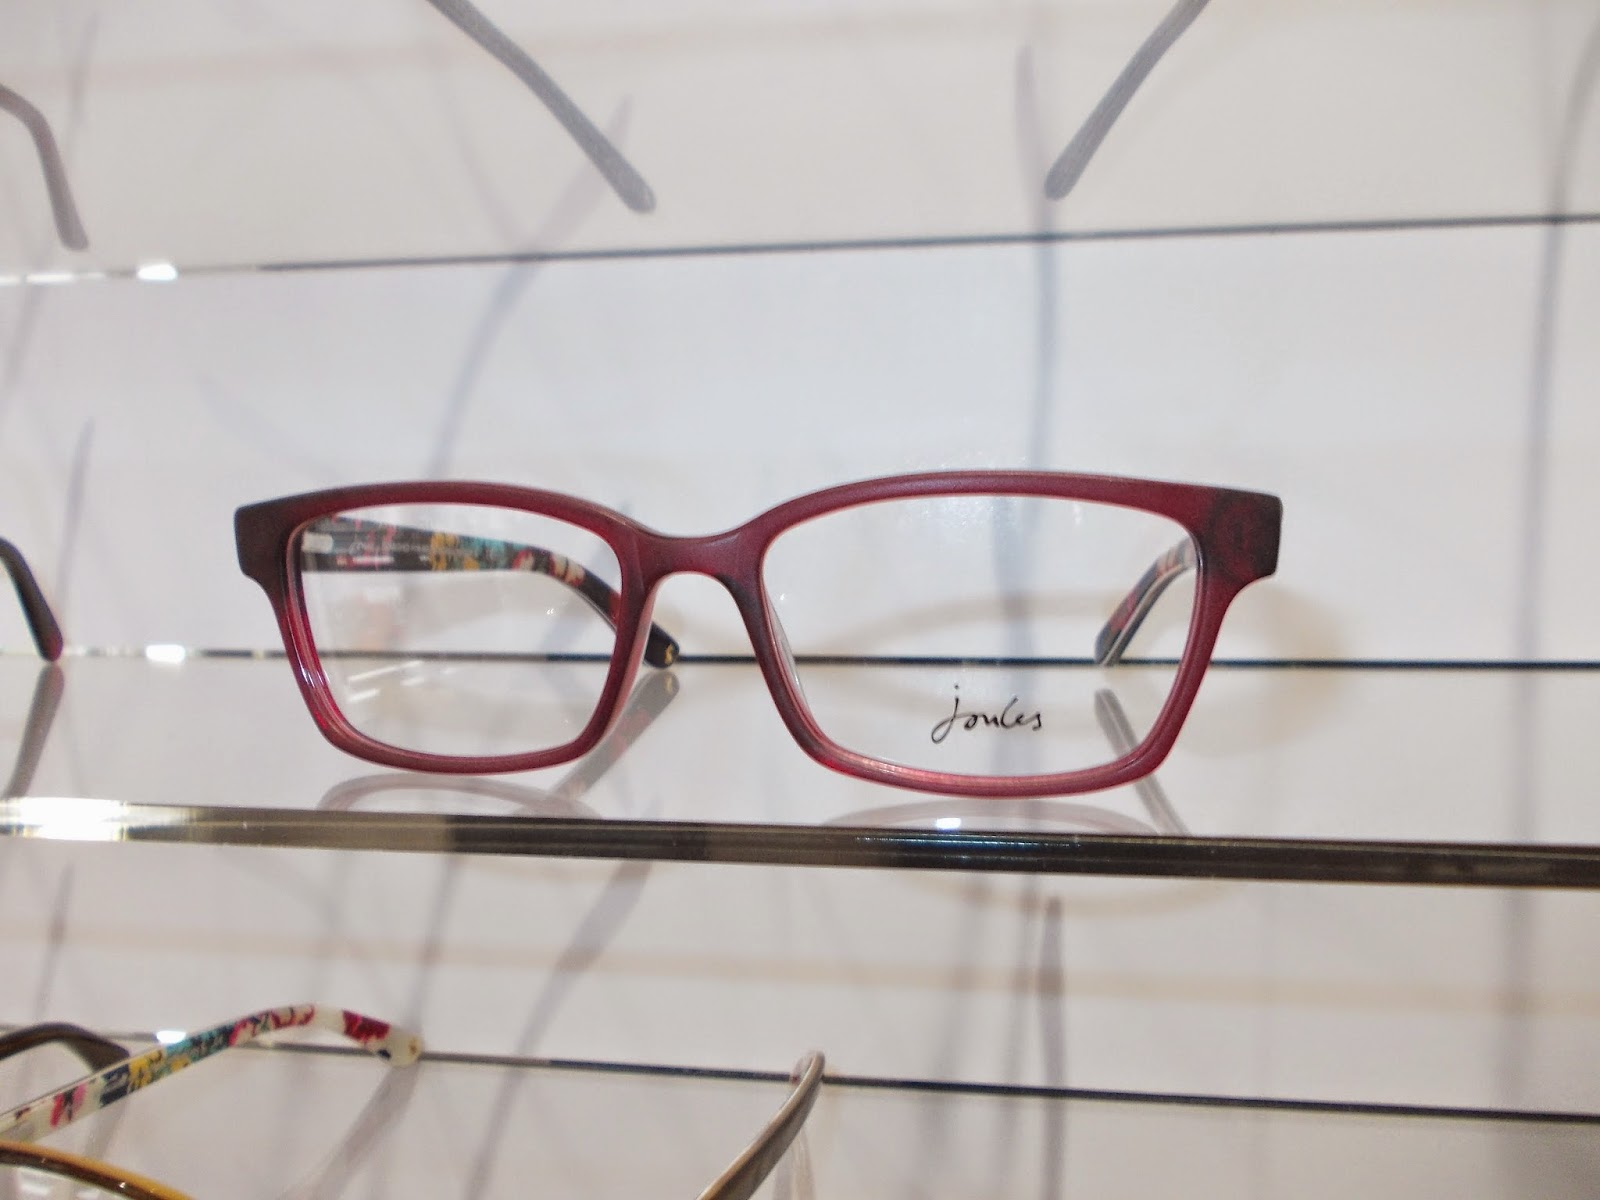 5aeeef71fb5 Joules Eyewear at Vision Express